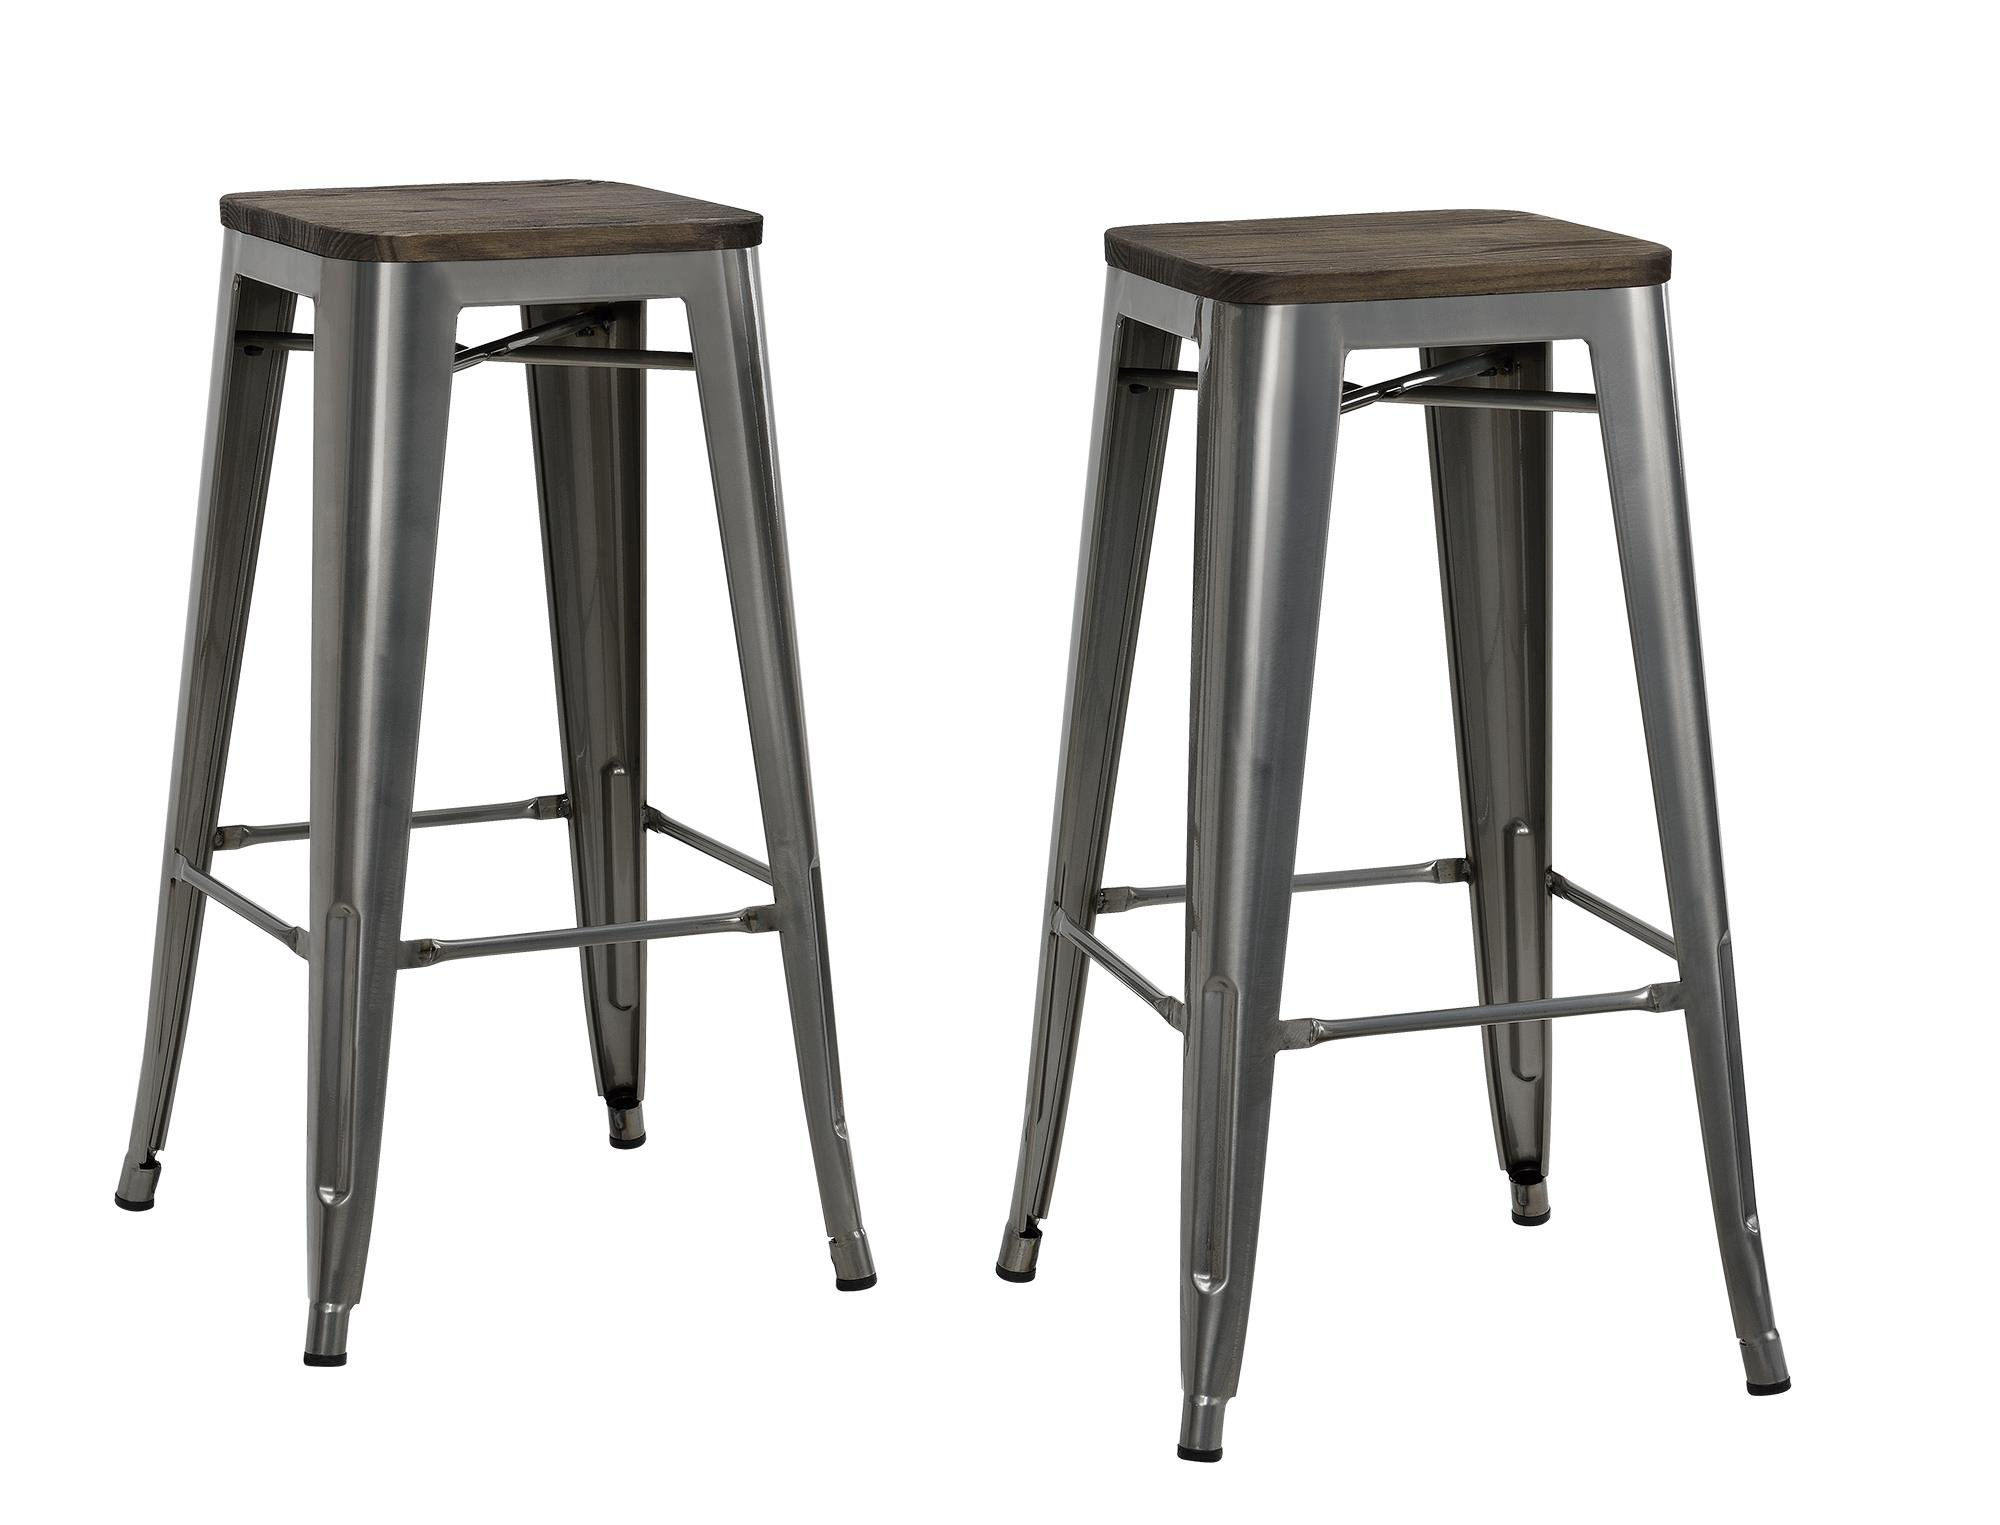 DHP Fusion Metal Backless Bar Stool with Wood Seat, Set of two, 30'', Grey